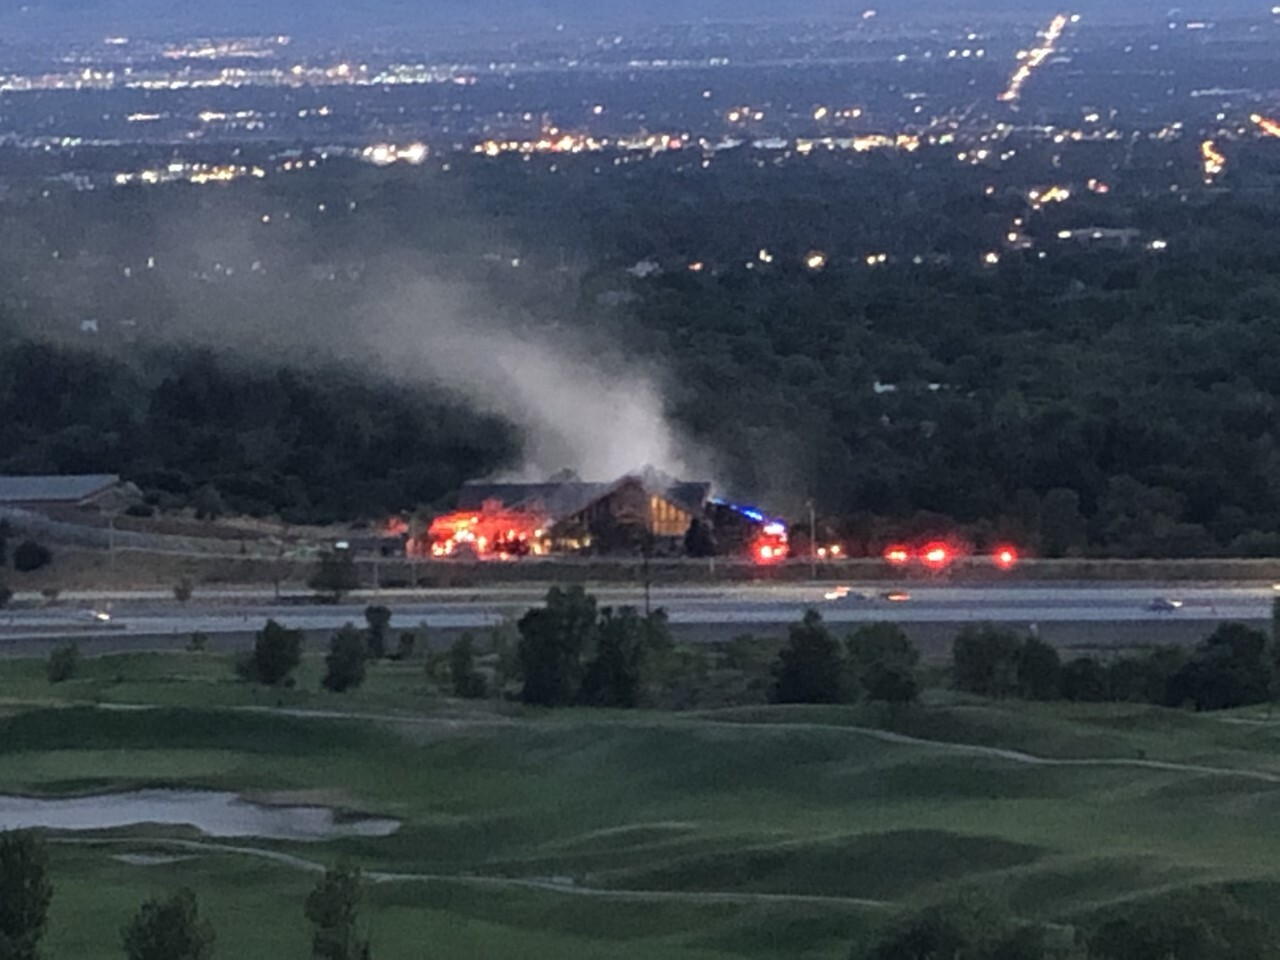 Photos: Fire destroys 25,000 square foot home in Holladay, burns for over 24hours